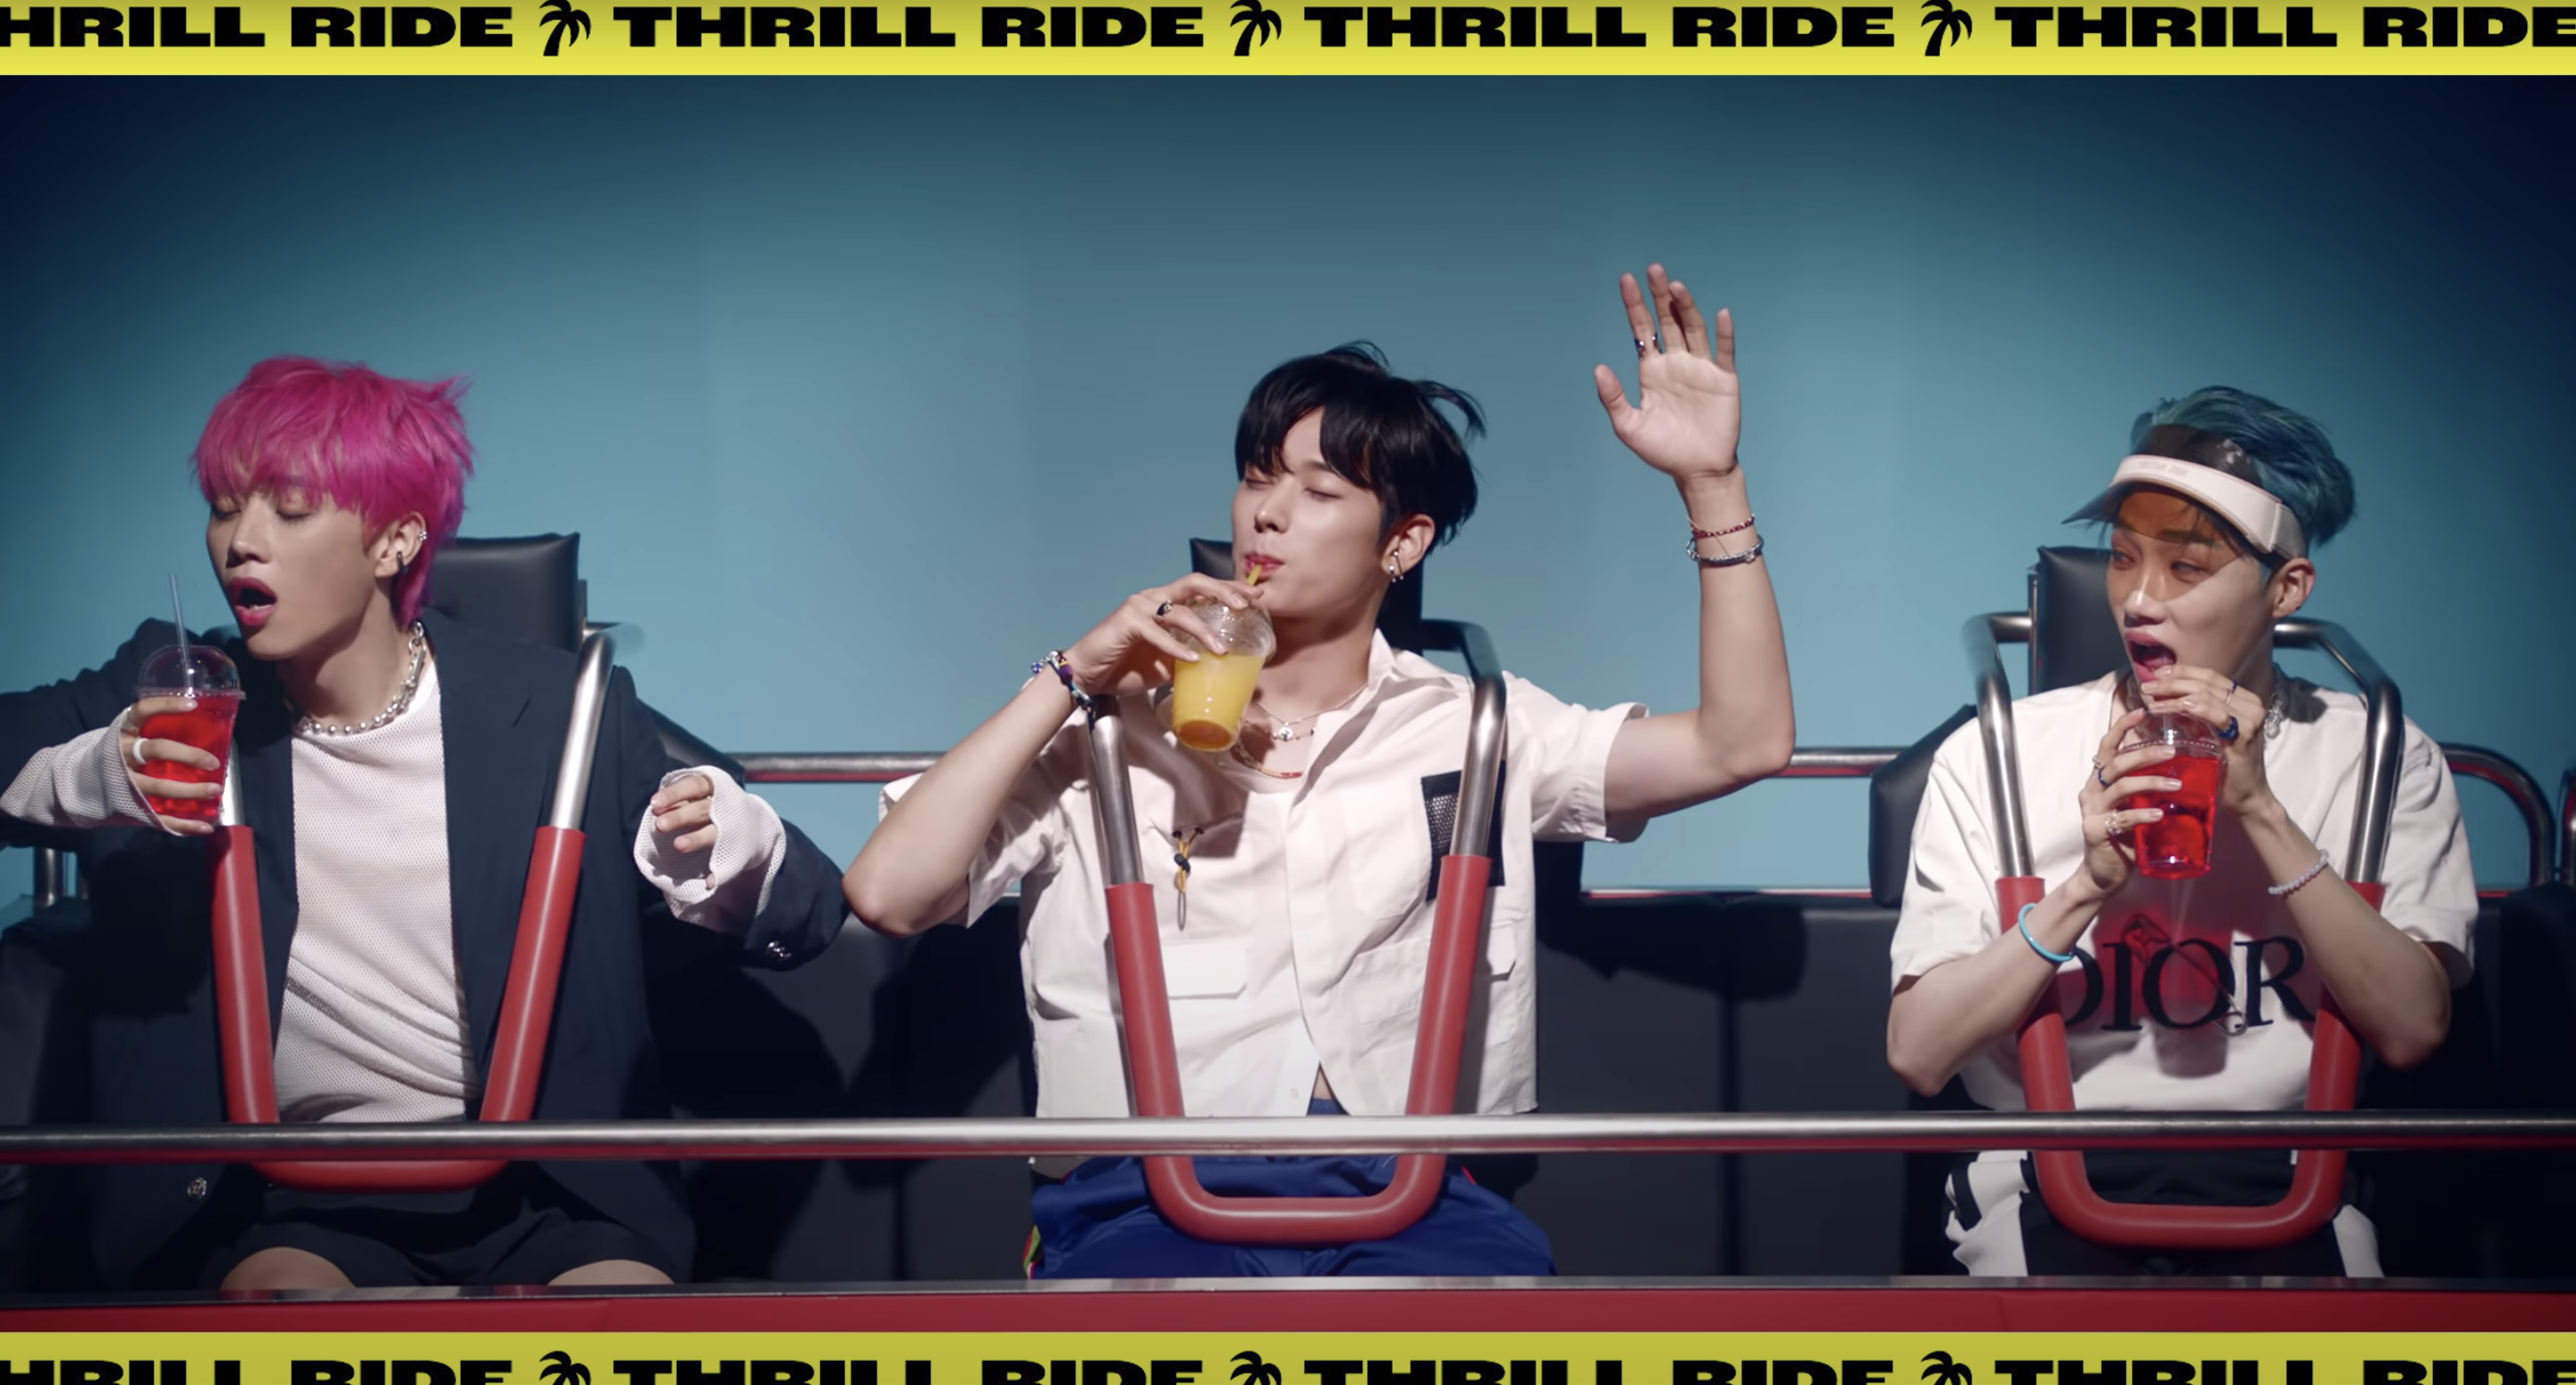 """Three members ride a roller coaster during the """"Thrill Ride"""" announcement"""